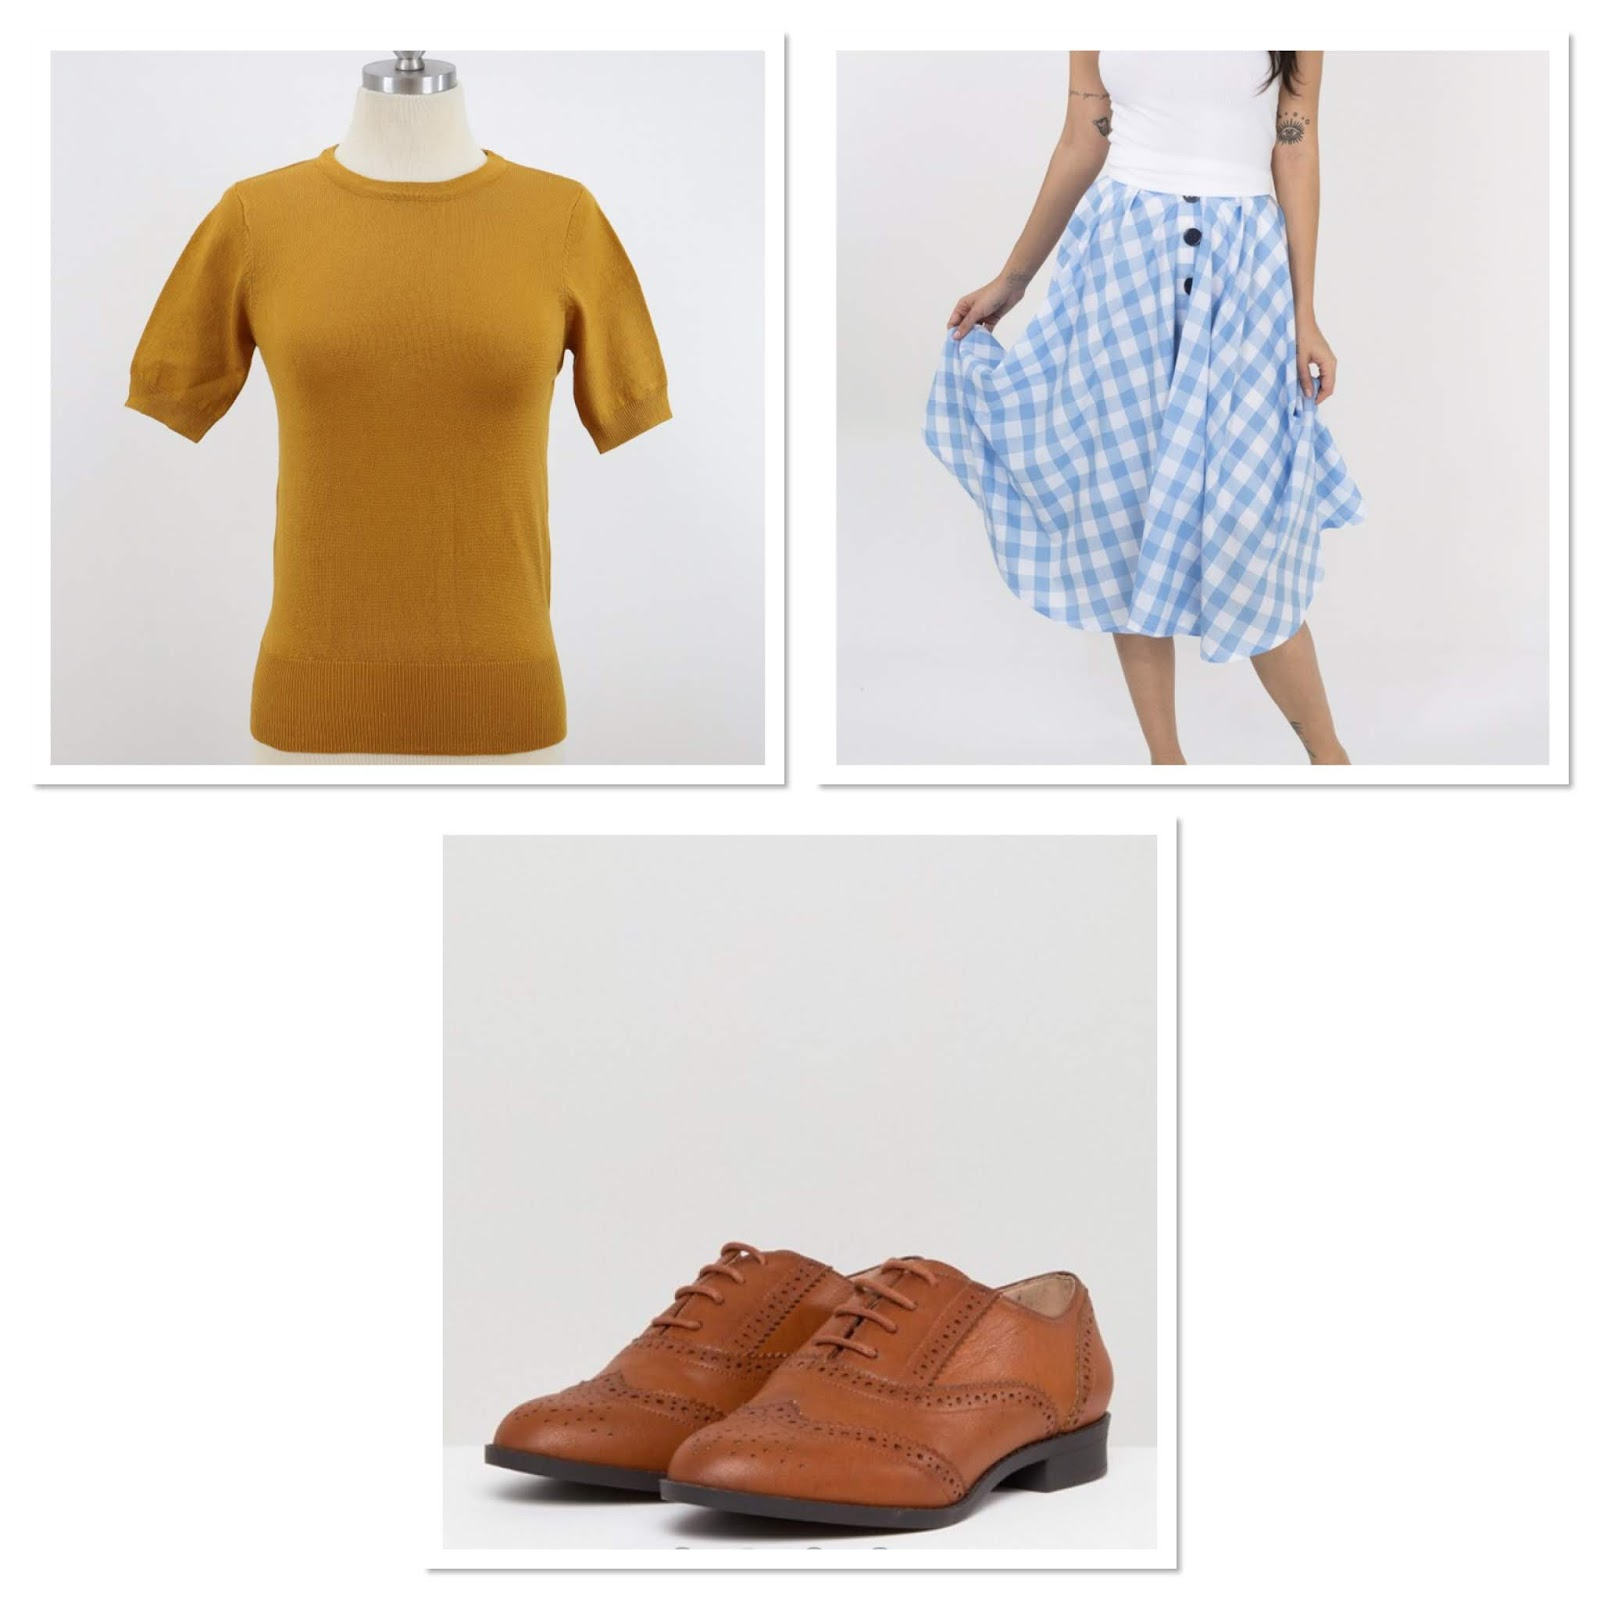 ee1b491aae7875 Teaming the new mustard short sleeve jumper with a swing skirt in blue  gingham. Adding brown brogues as pictured to tie it altogether.